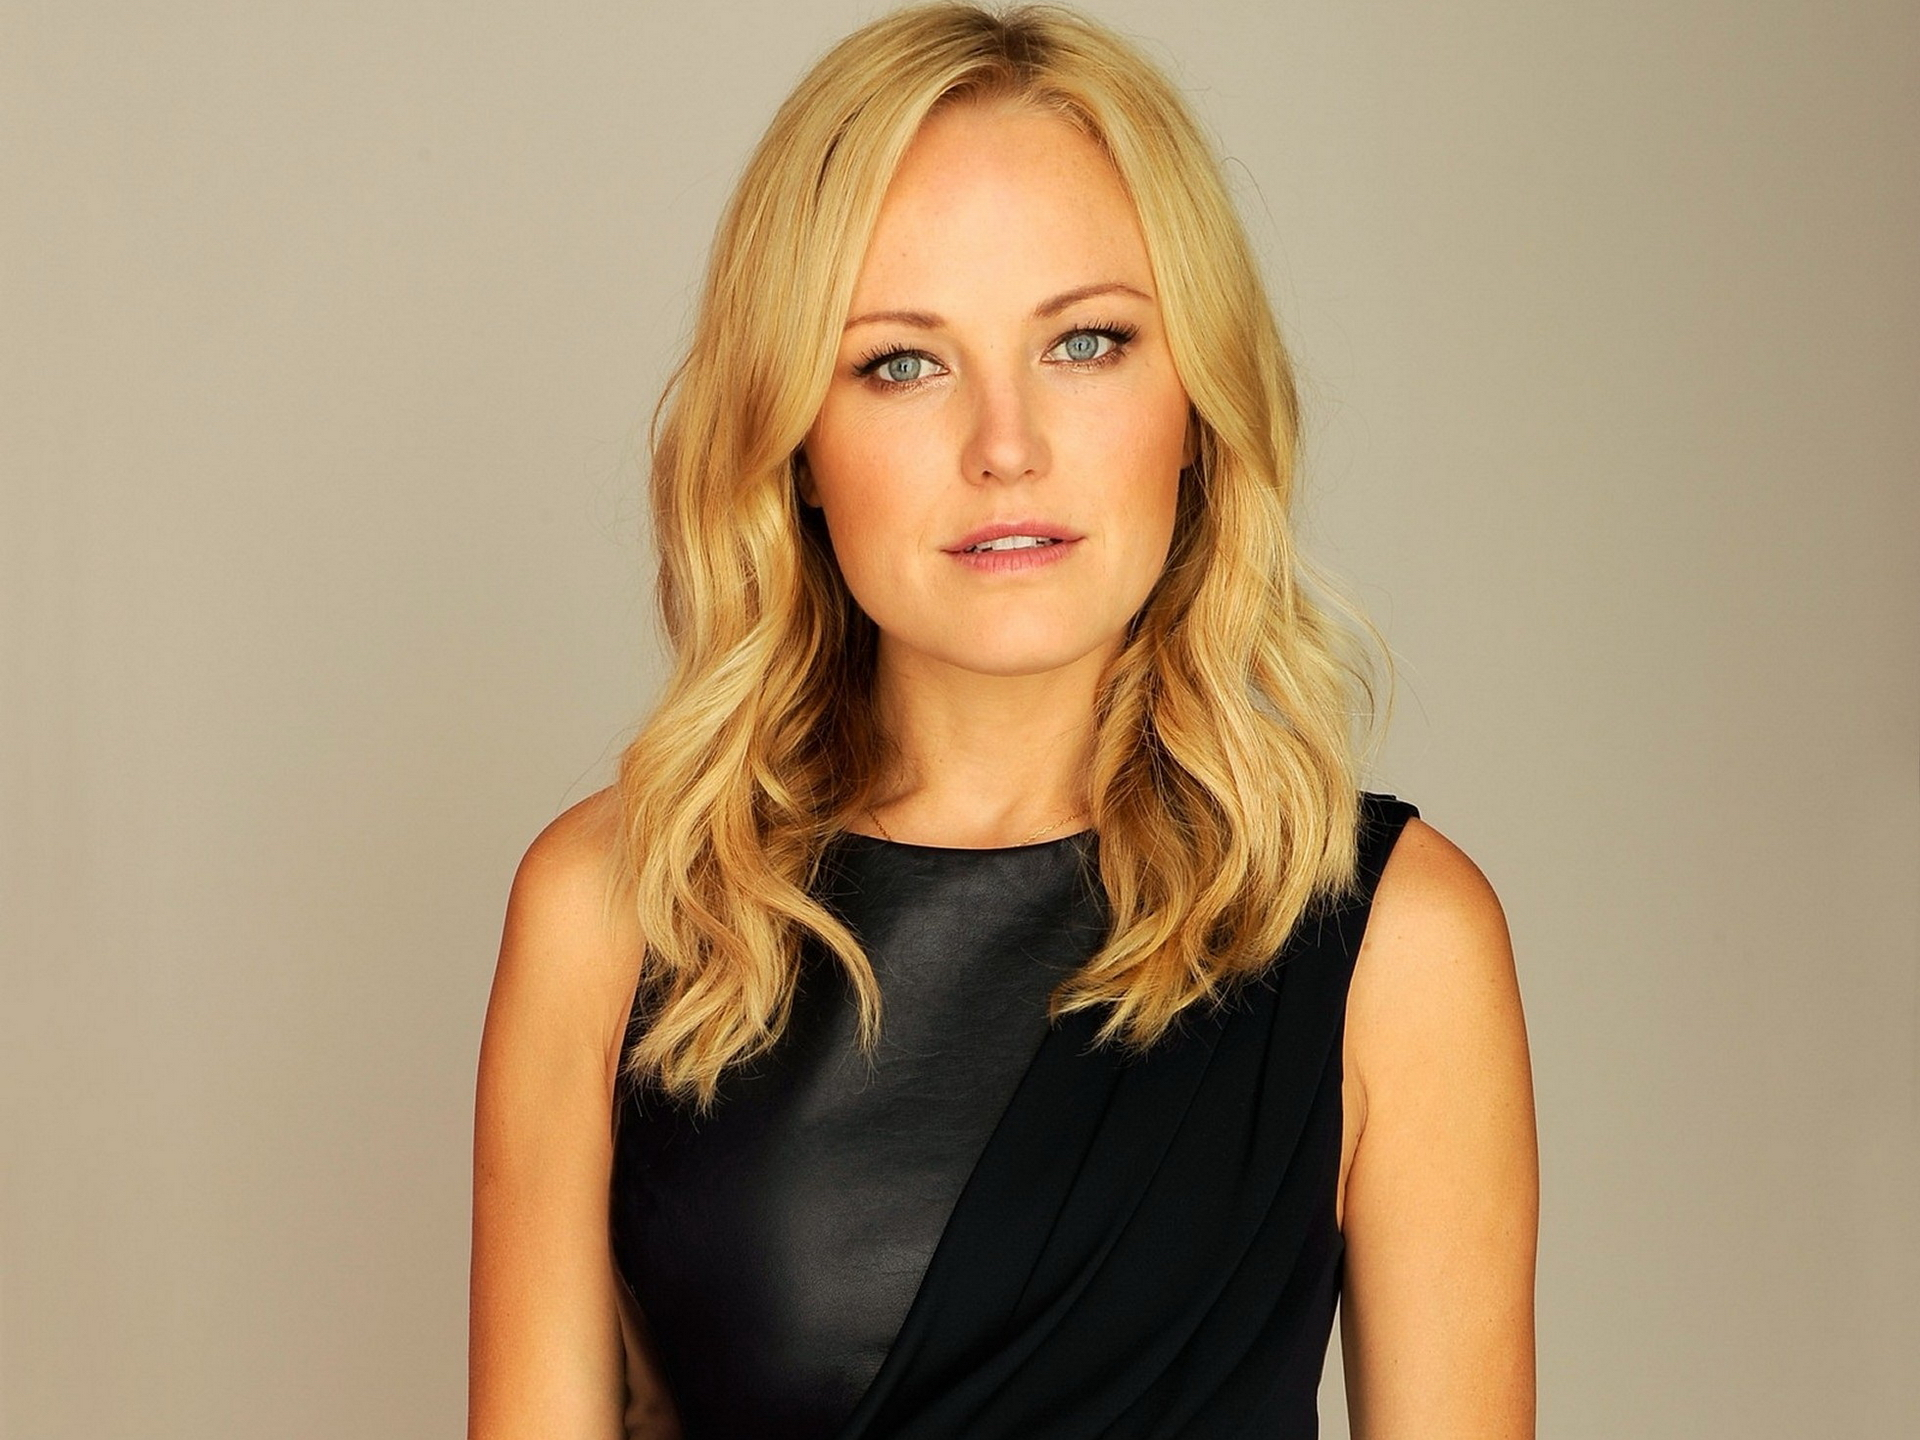 malin akerman wiki